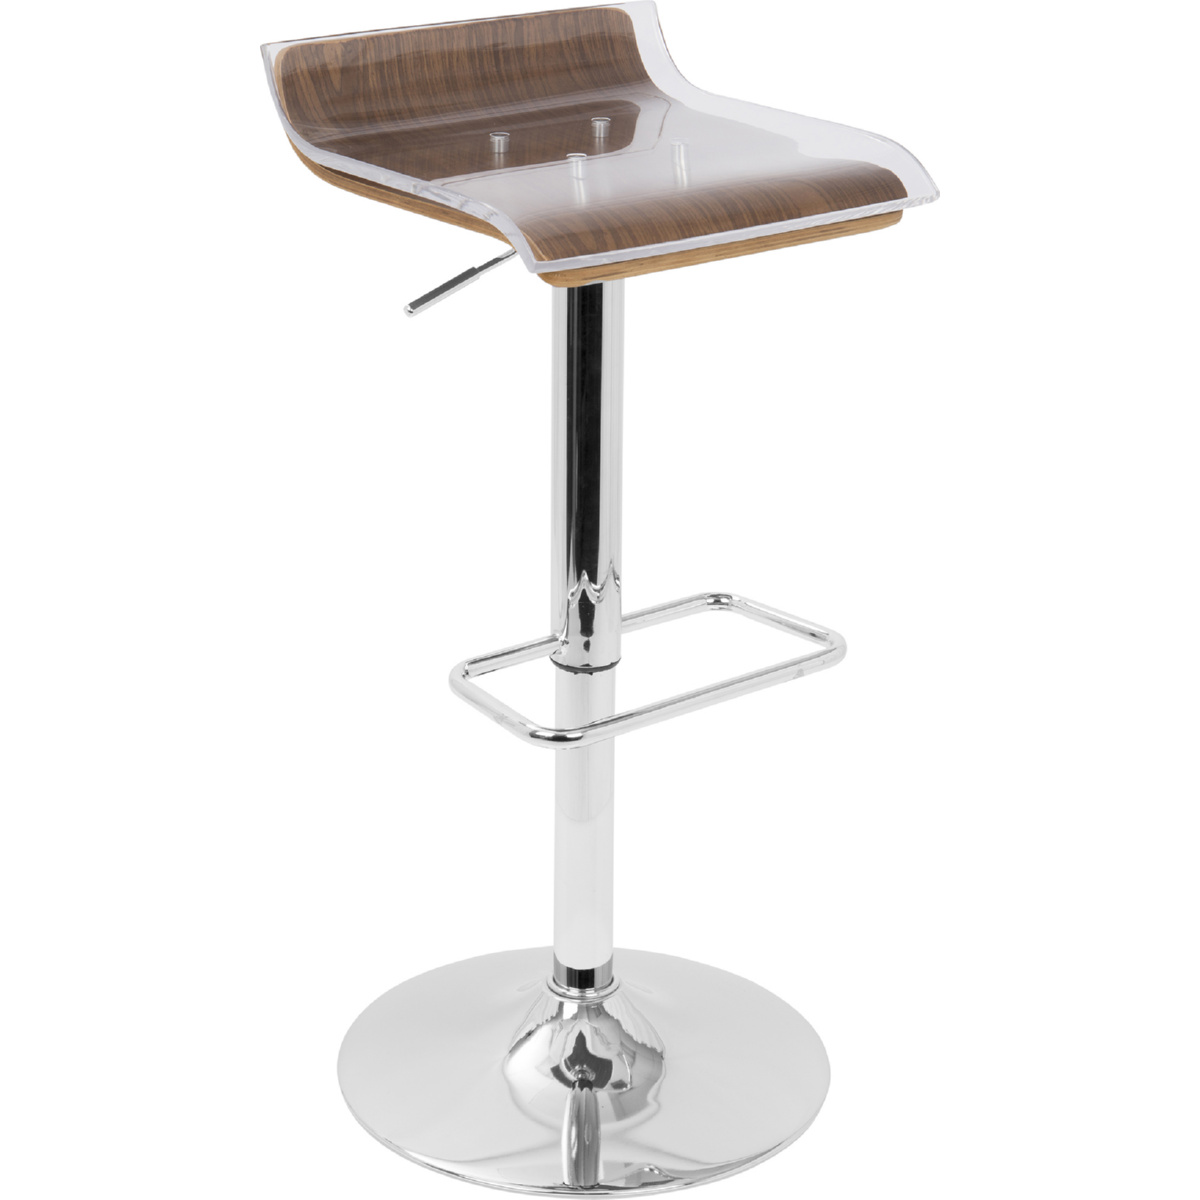 Tremendous Ale 2 Tier Swivel Bar Stool In Walnut Acrylic By Lumisource Alphanode Cool Chair Designs And Ideas Alphanodeonline